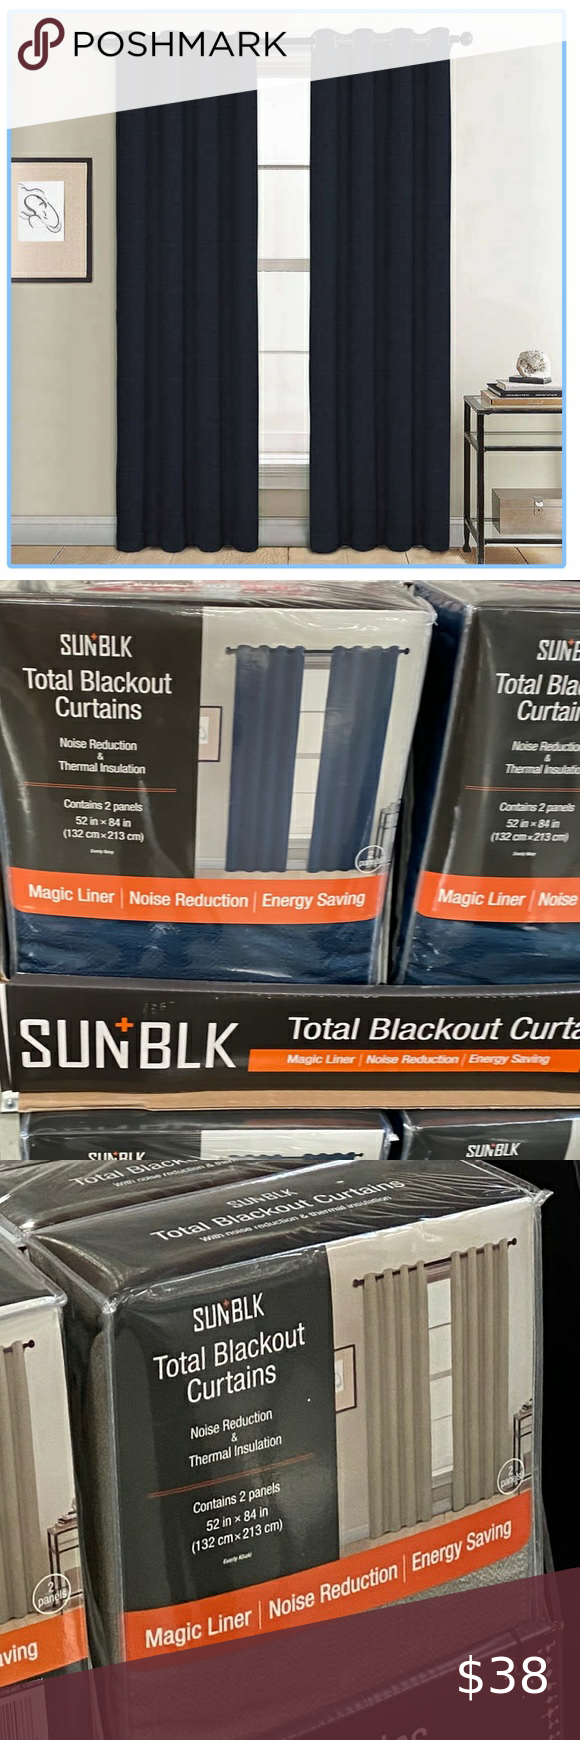 Total Blackout Curtains In 2020 Blackout Curtains Thermal Curtains Curtains